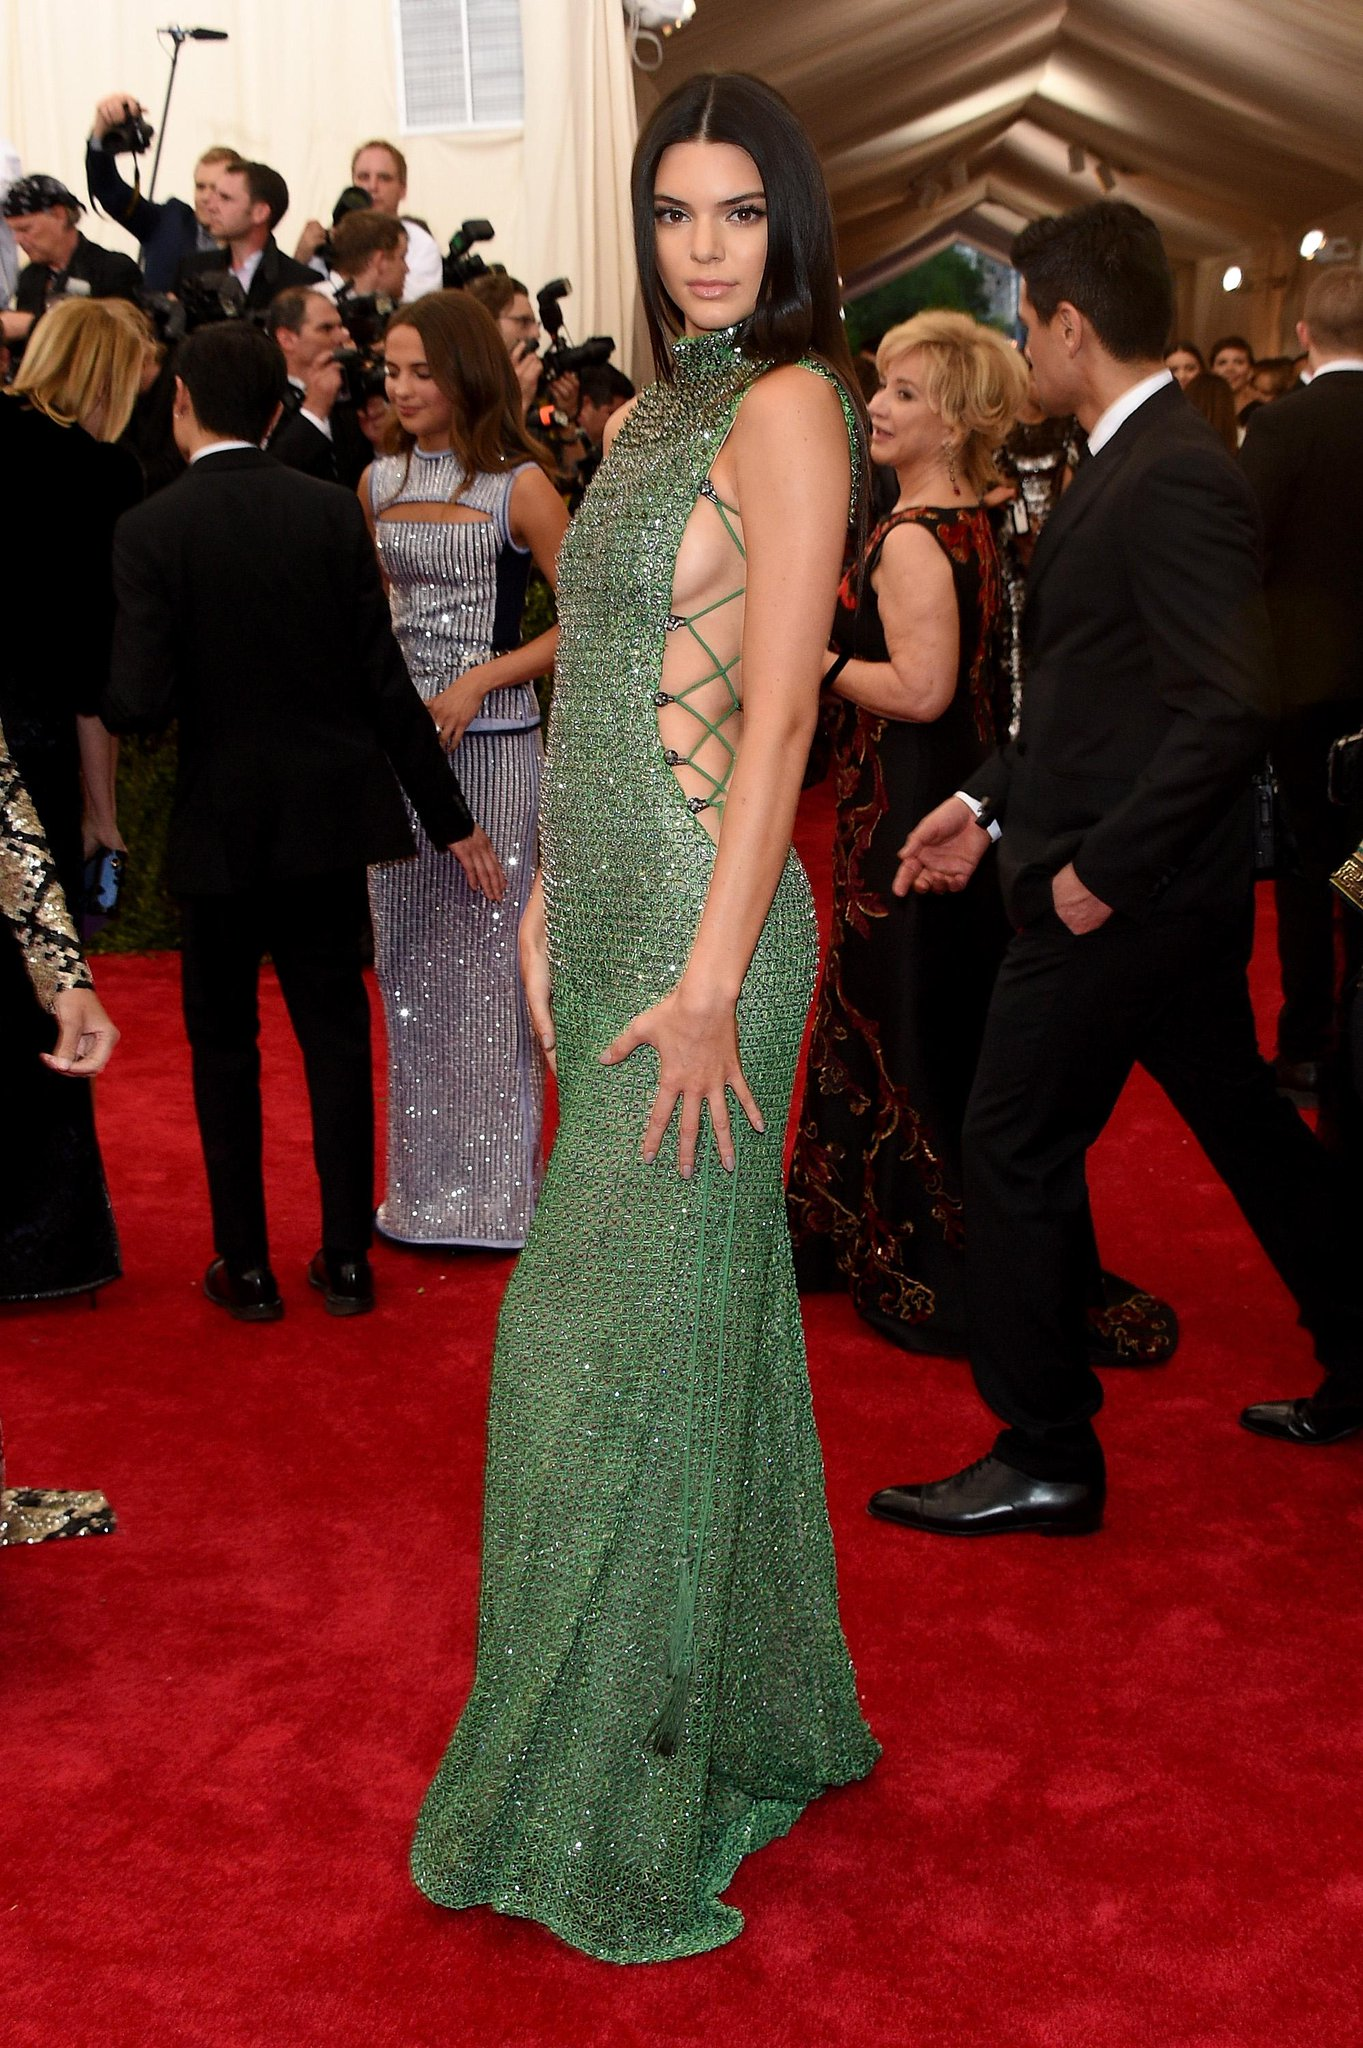 WOW. @KendallJenner absolutely killing it in a jade green @CalvinKlein Collection design. #MetGala http://t.co/pH5XCv6lkR